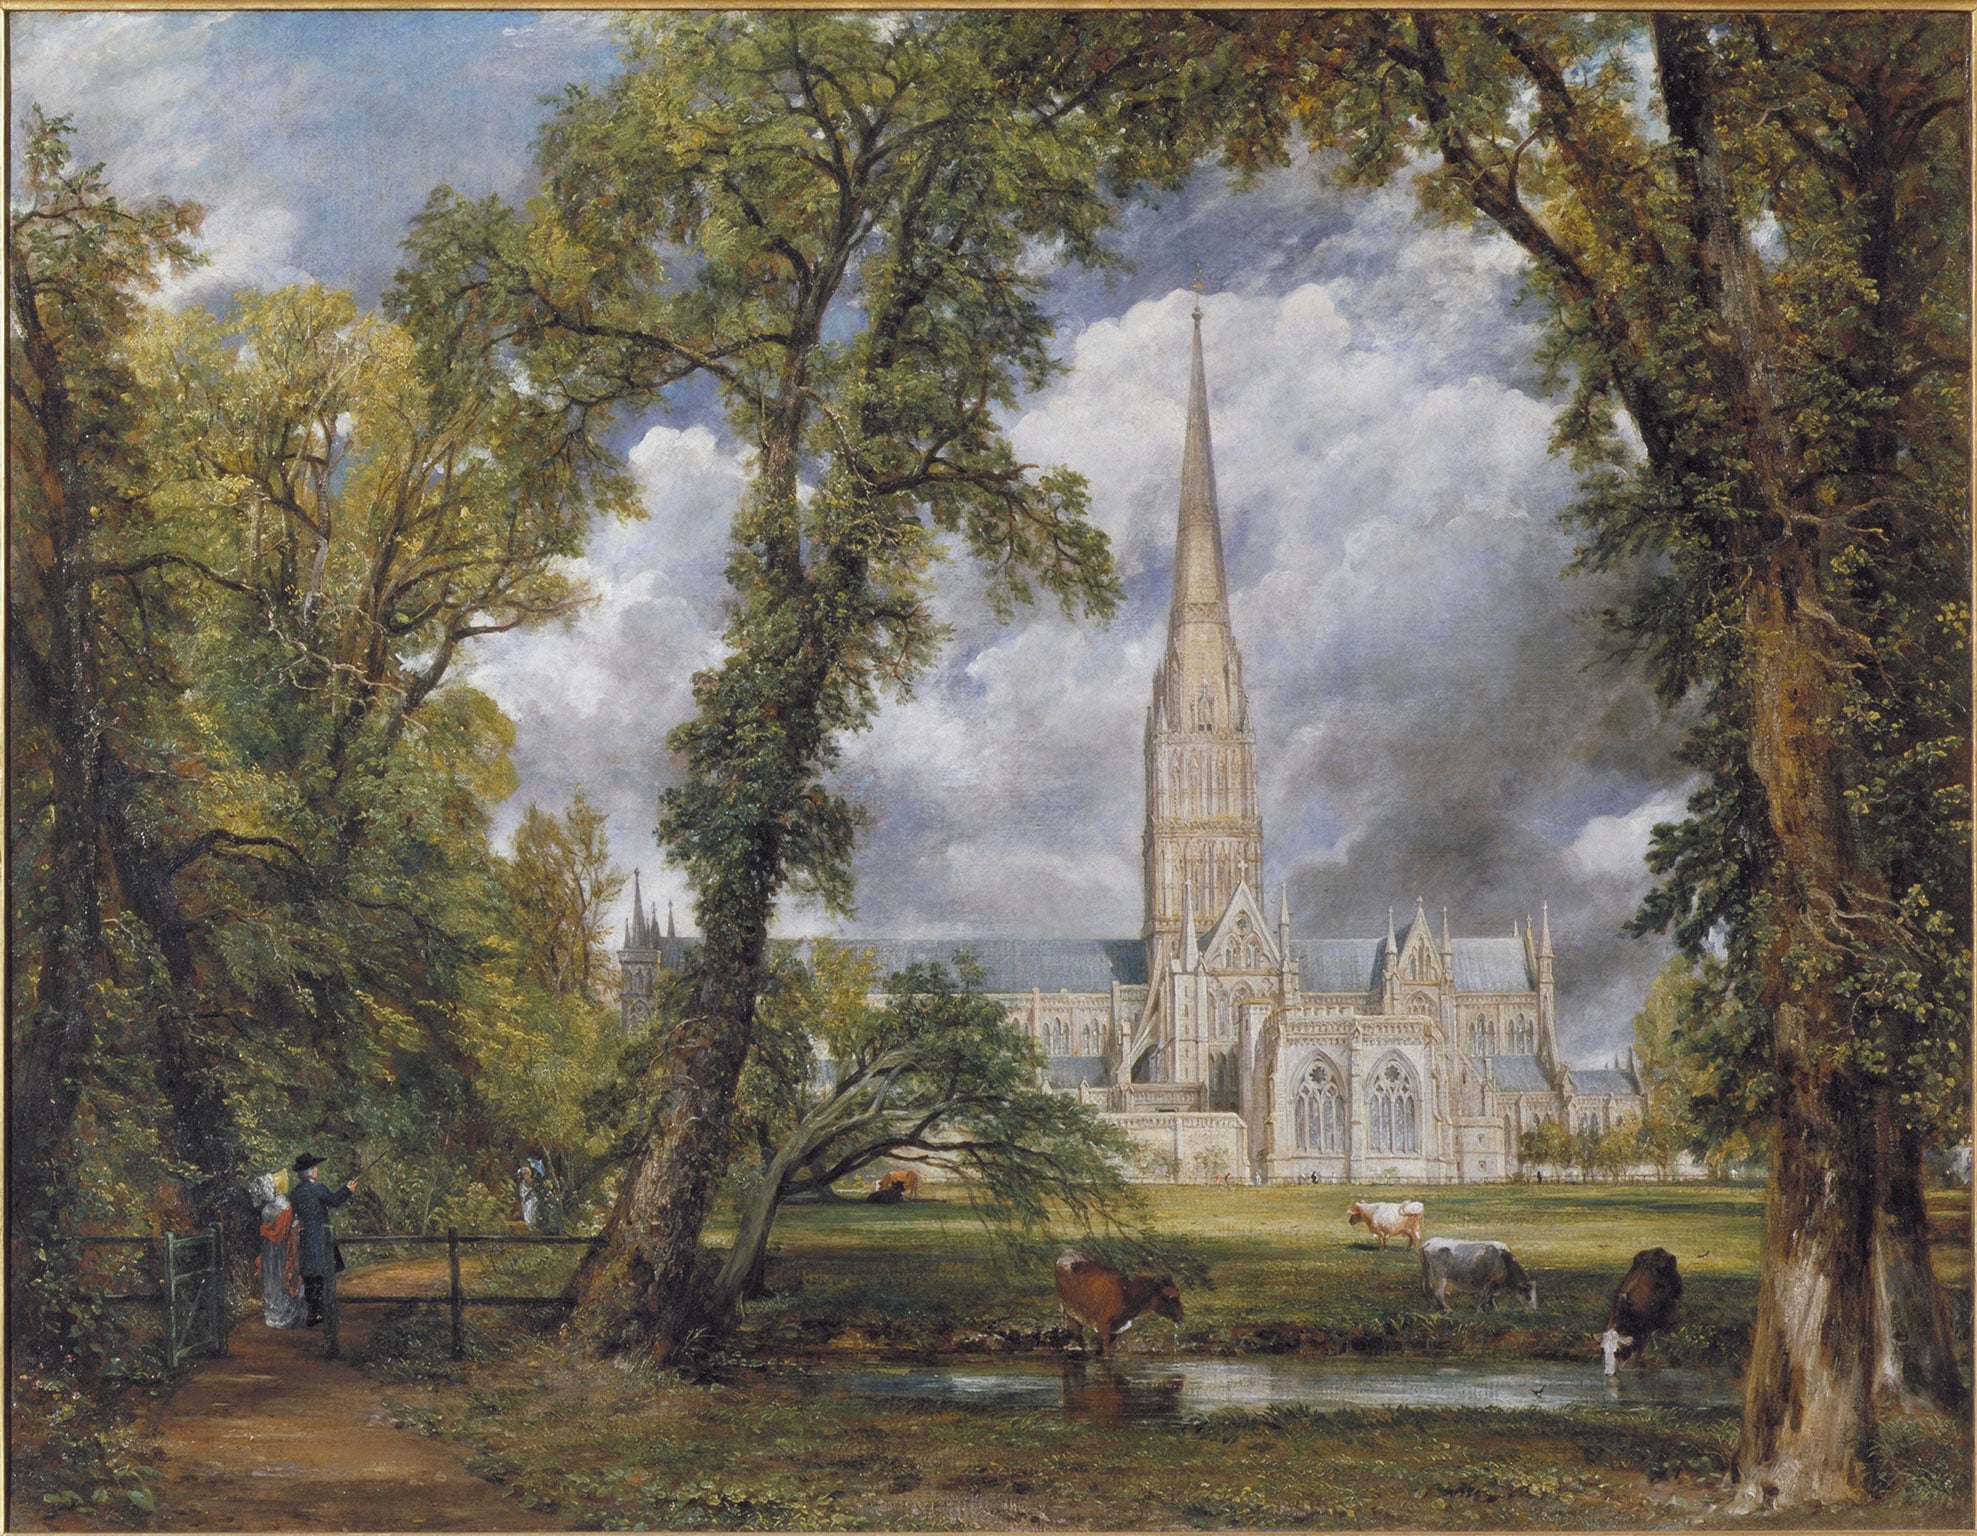 John Constable, Salisbury Cathedral from the Bishops Ground, 1823c